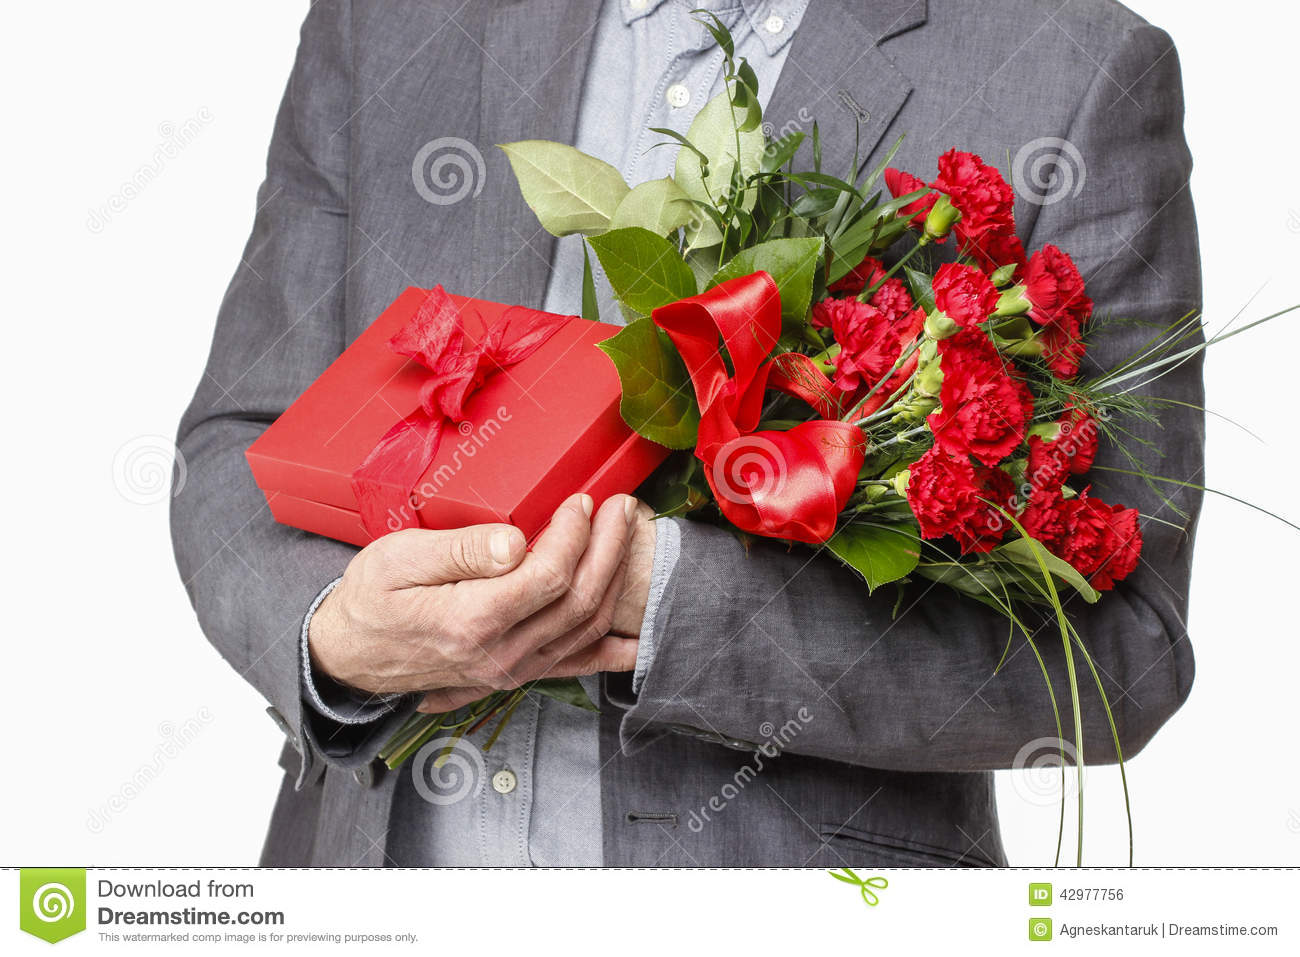 Man Holding Bouquet Of Carnation Flowers And Red Box With